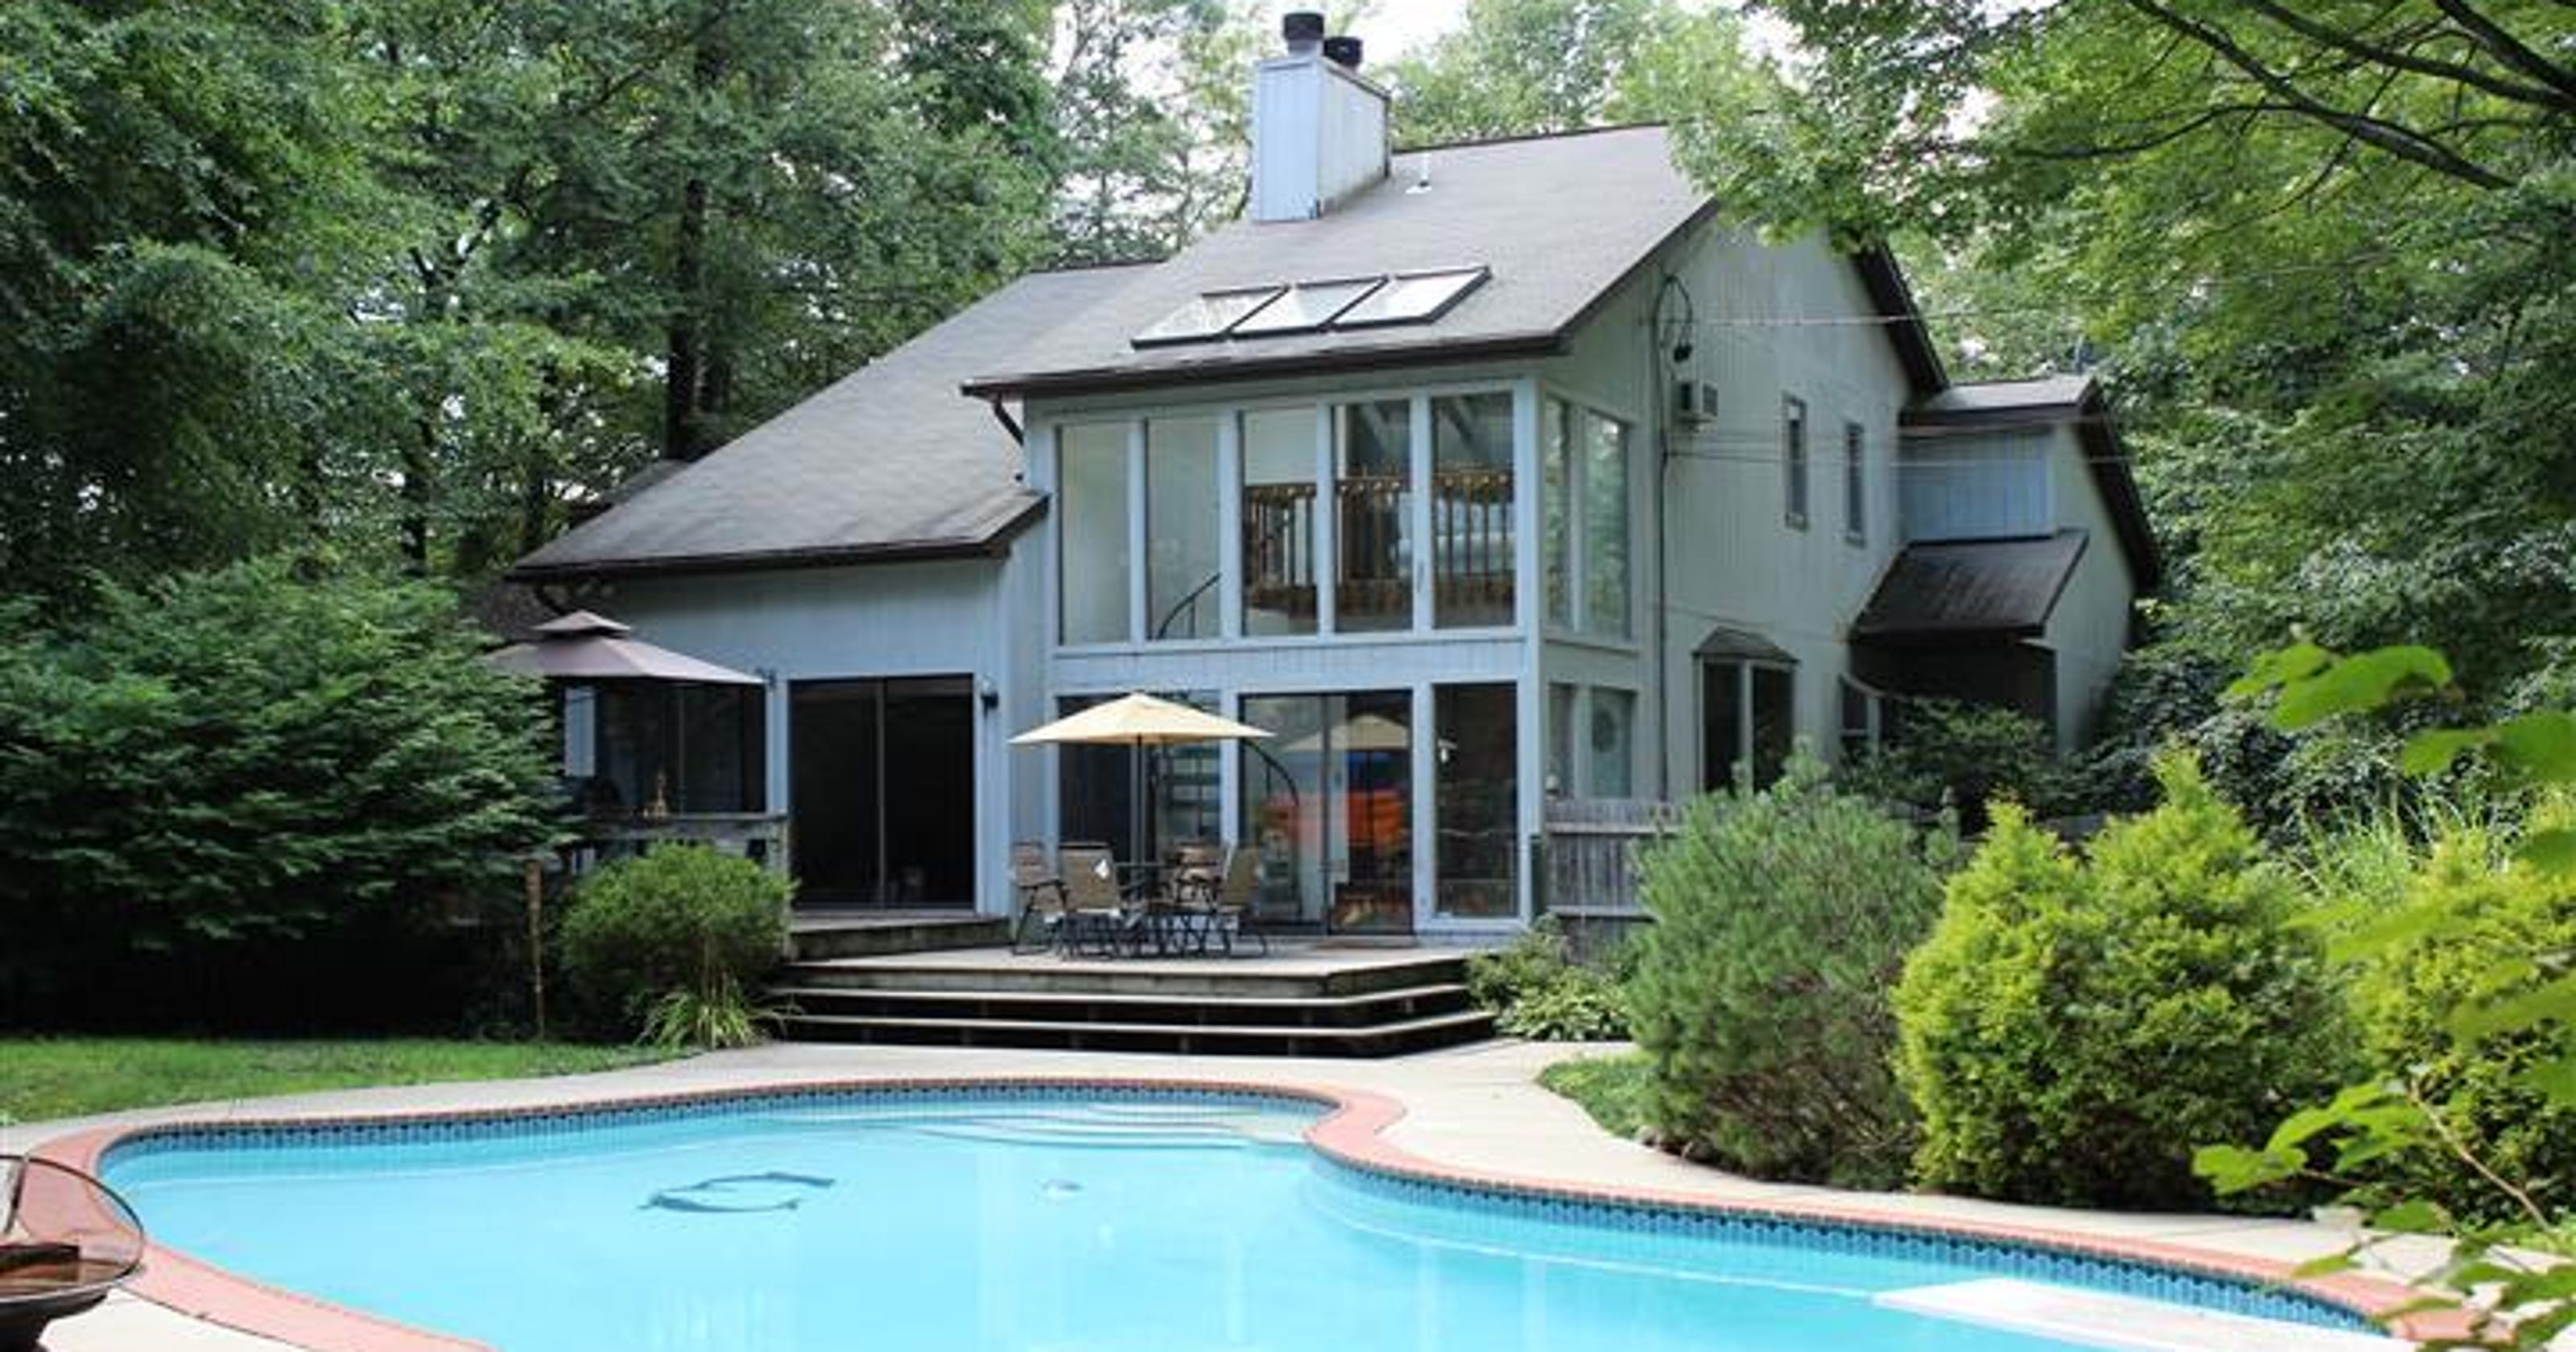 How To Make Big Money From Your Vacation Home